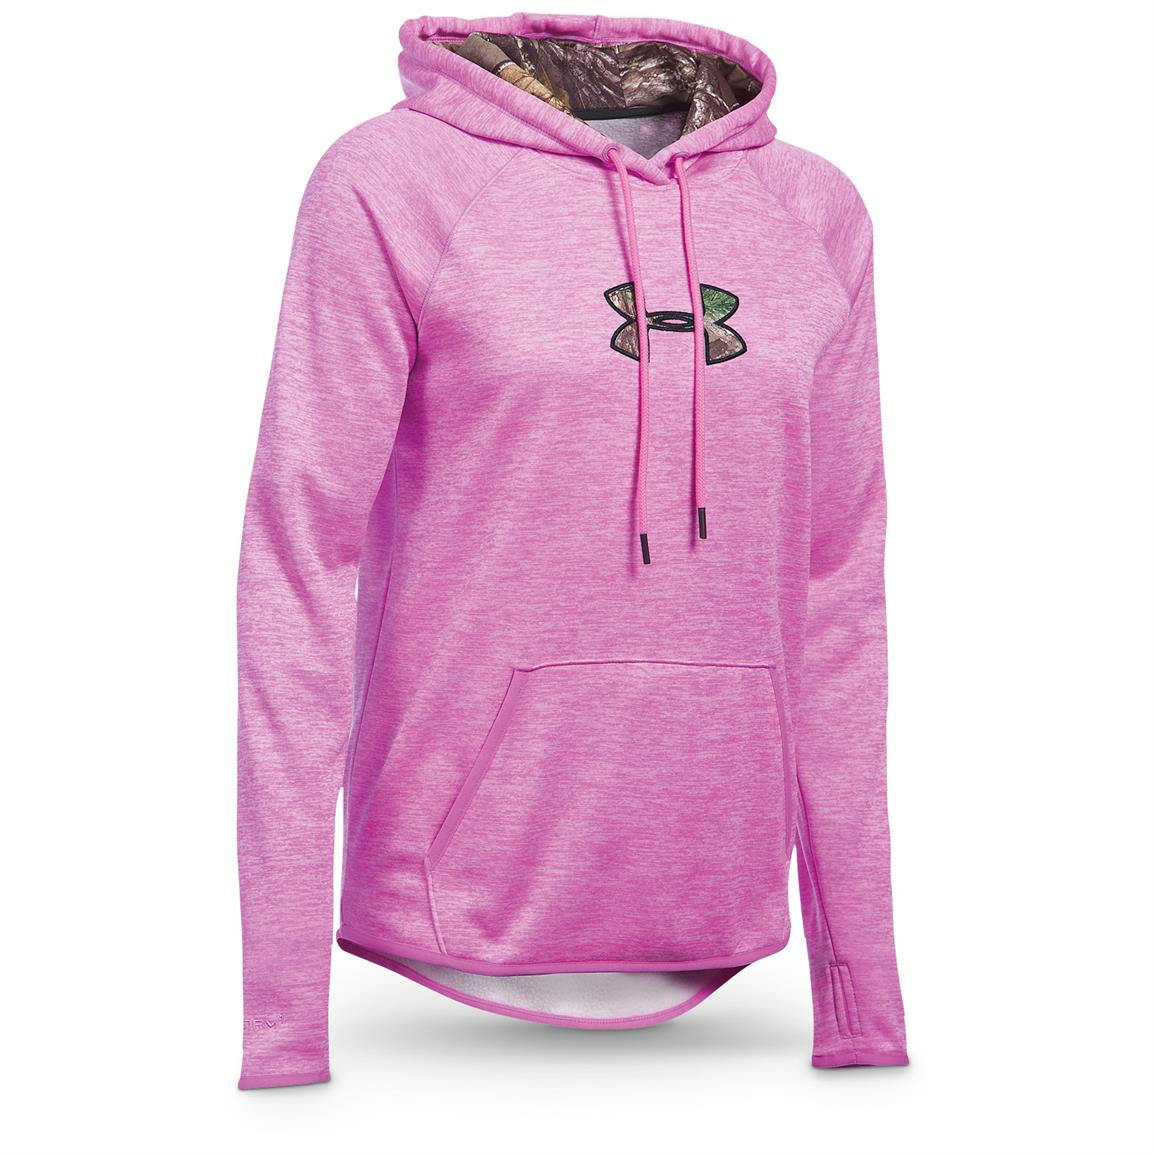 Under Armour Women's Icon Caliber Hoodie, Verve Violet